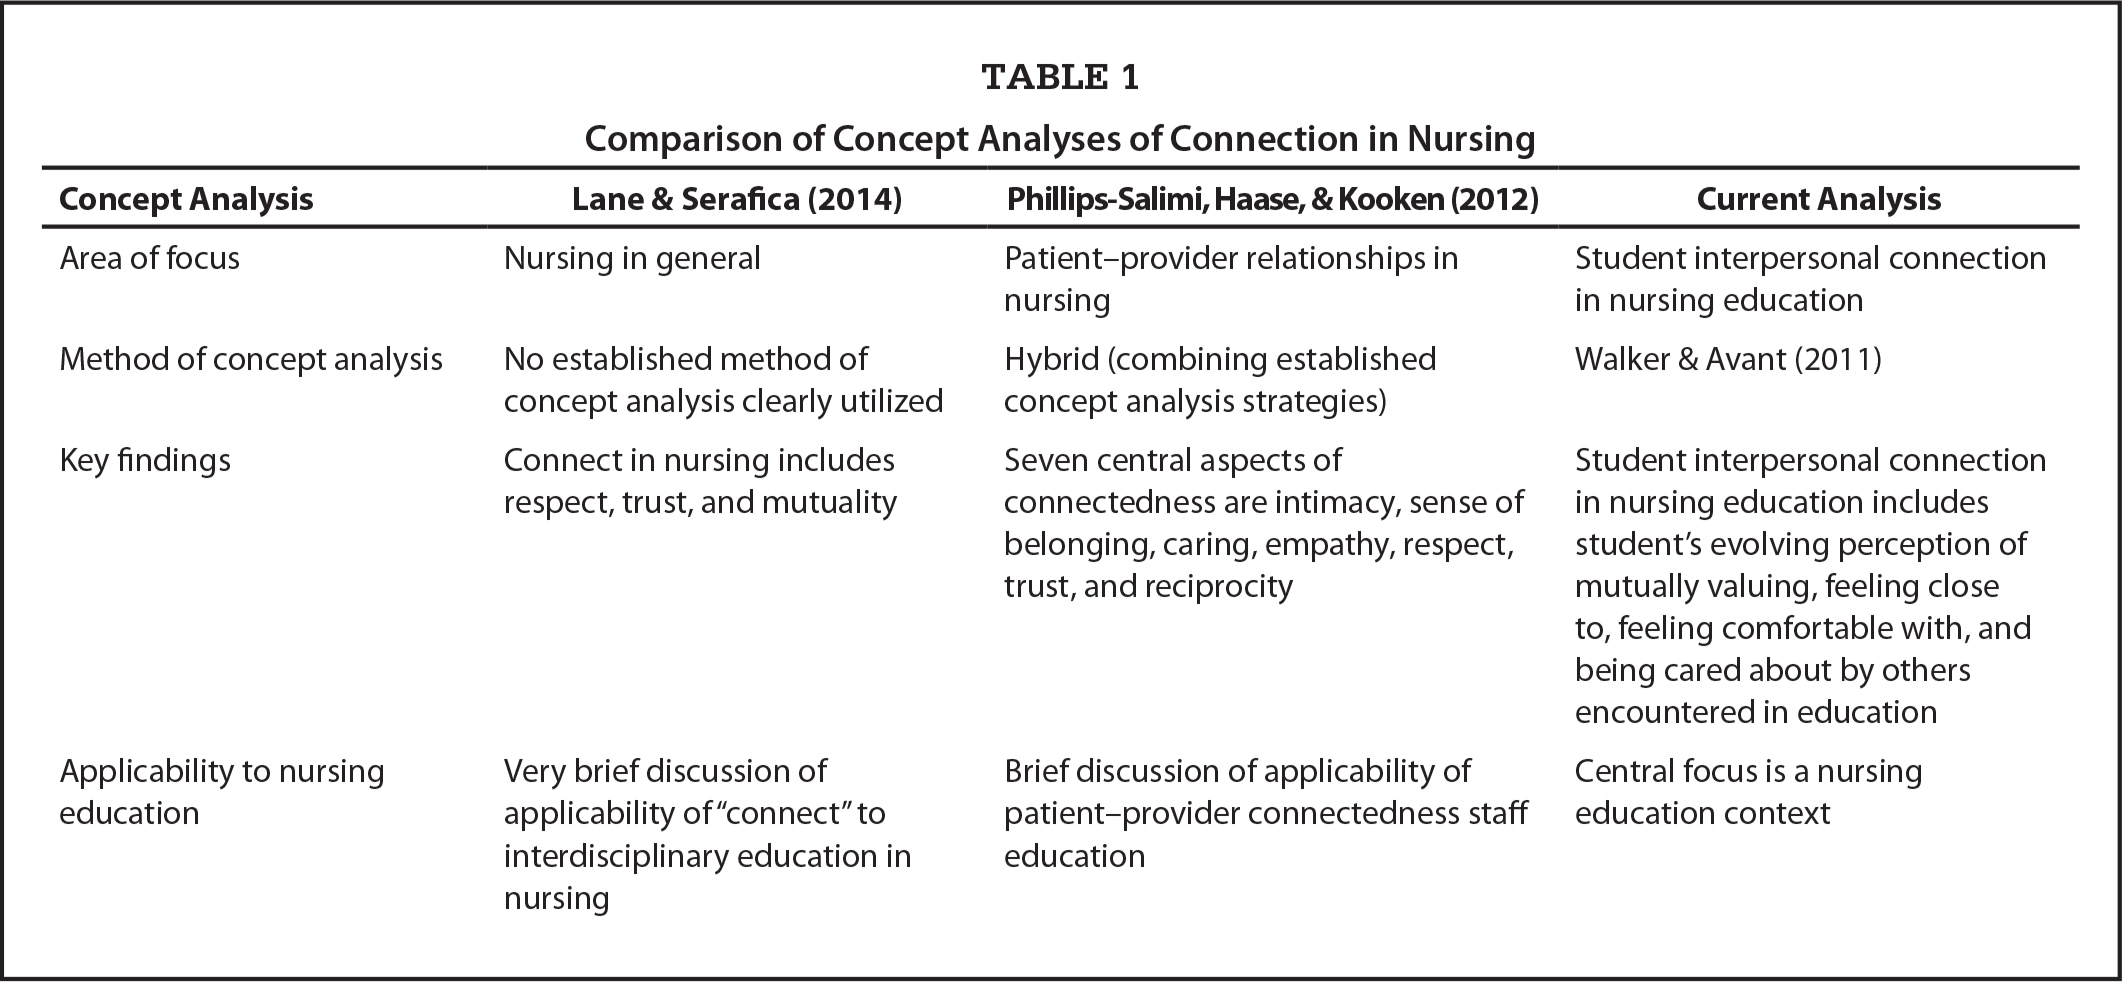 Comparison of Concept Analyses of Connection in Nursing